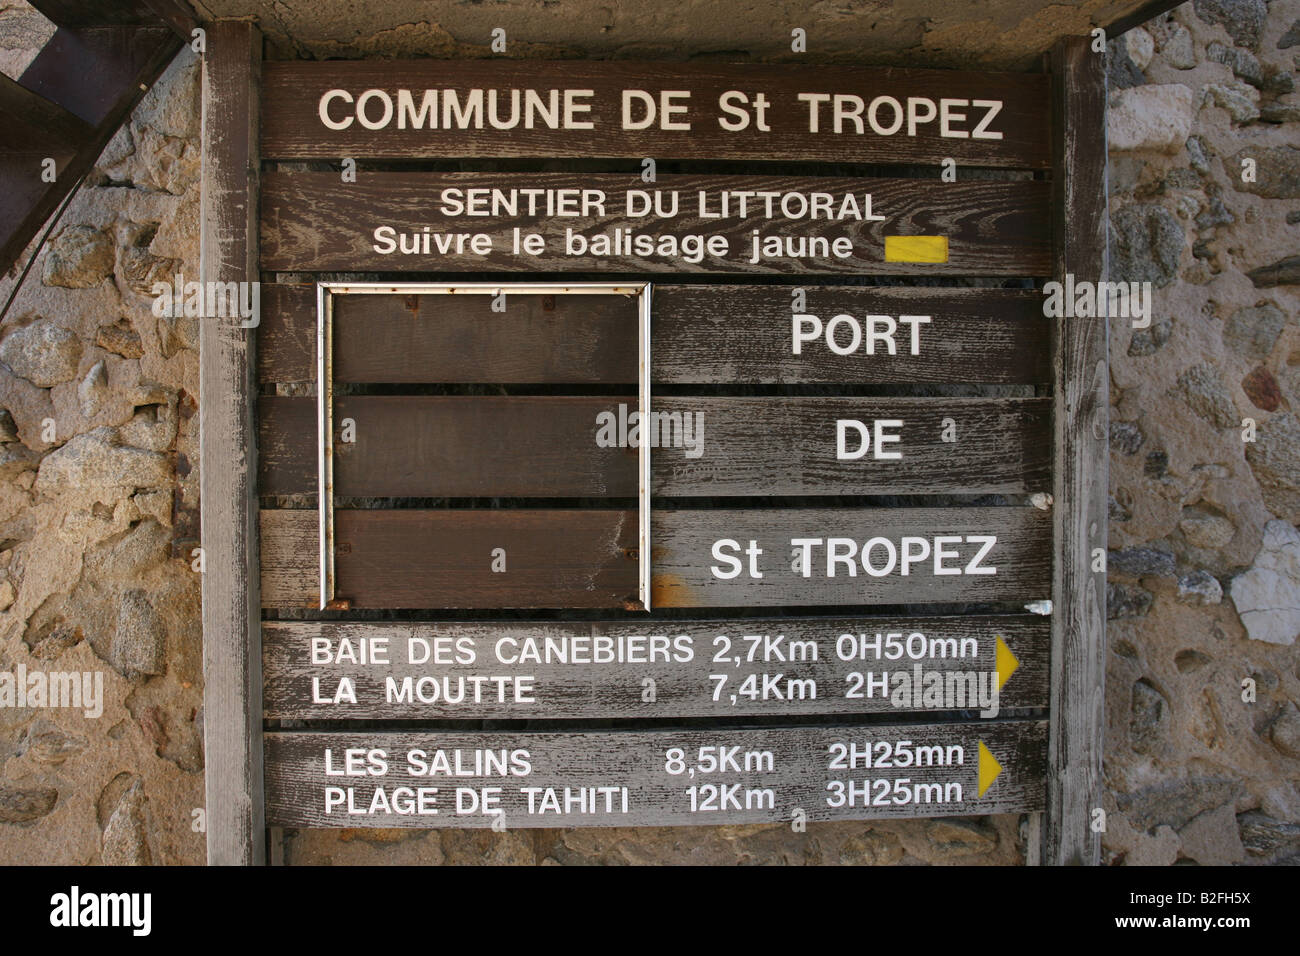 Sign on the harbour front of St Tropez, France. - Stock Image